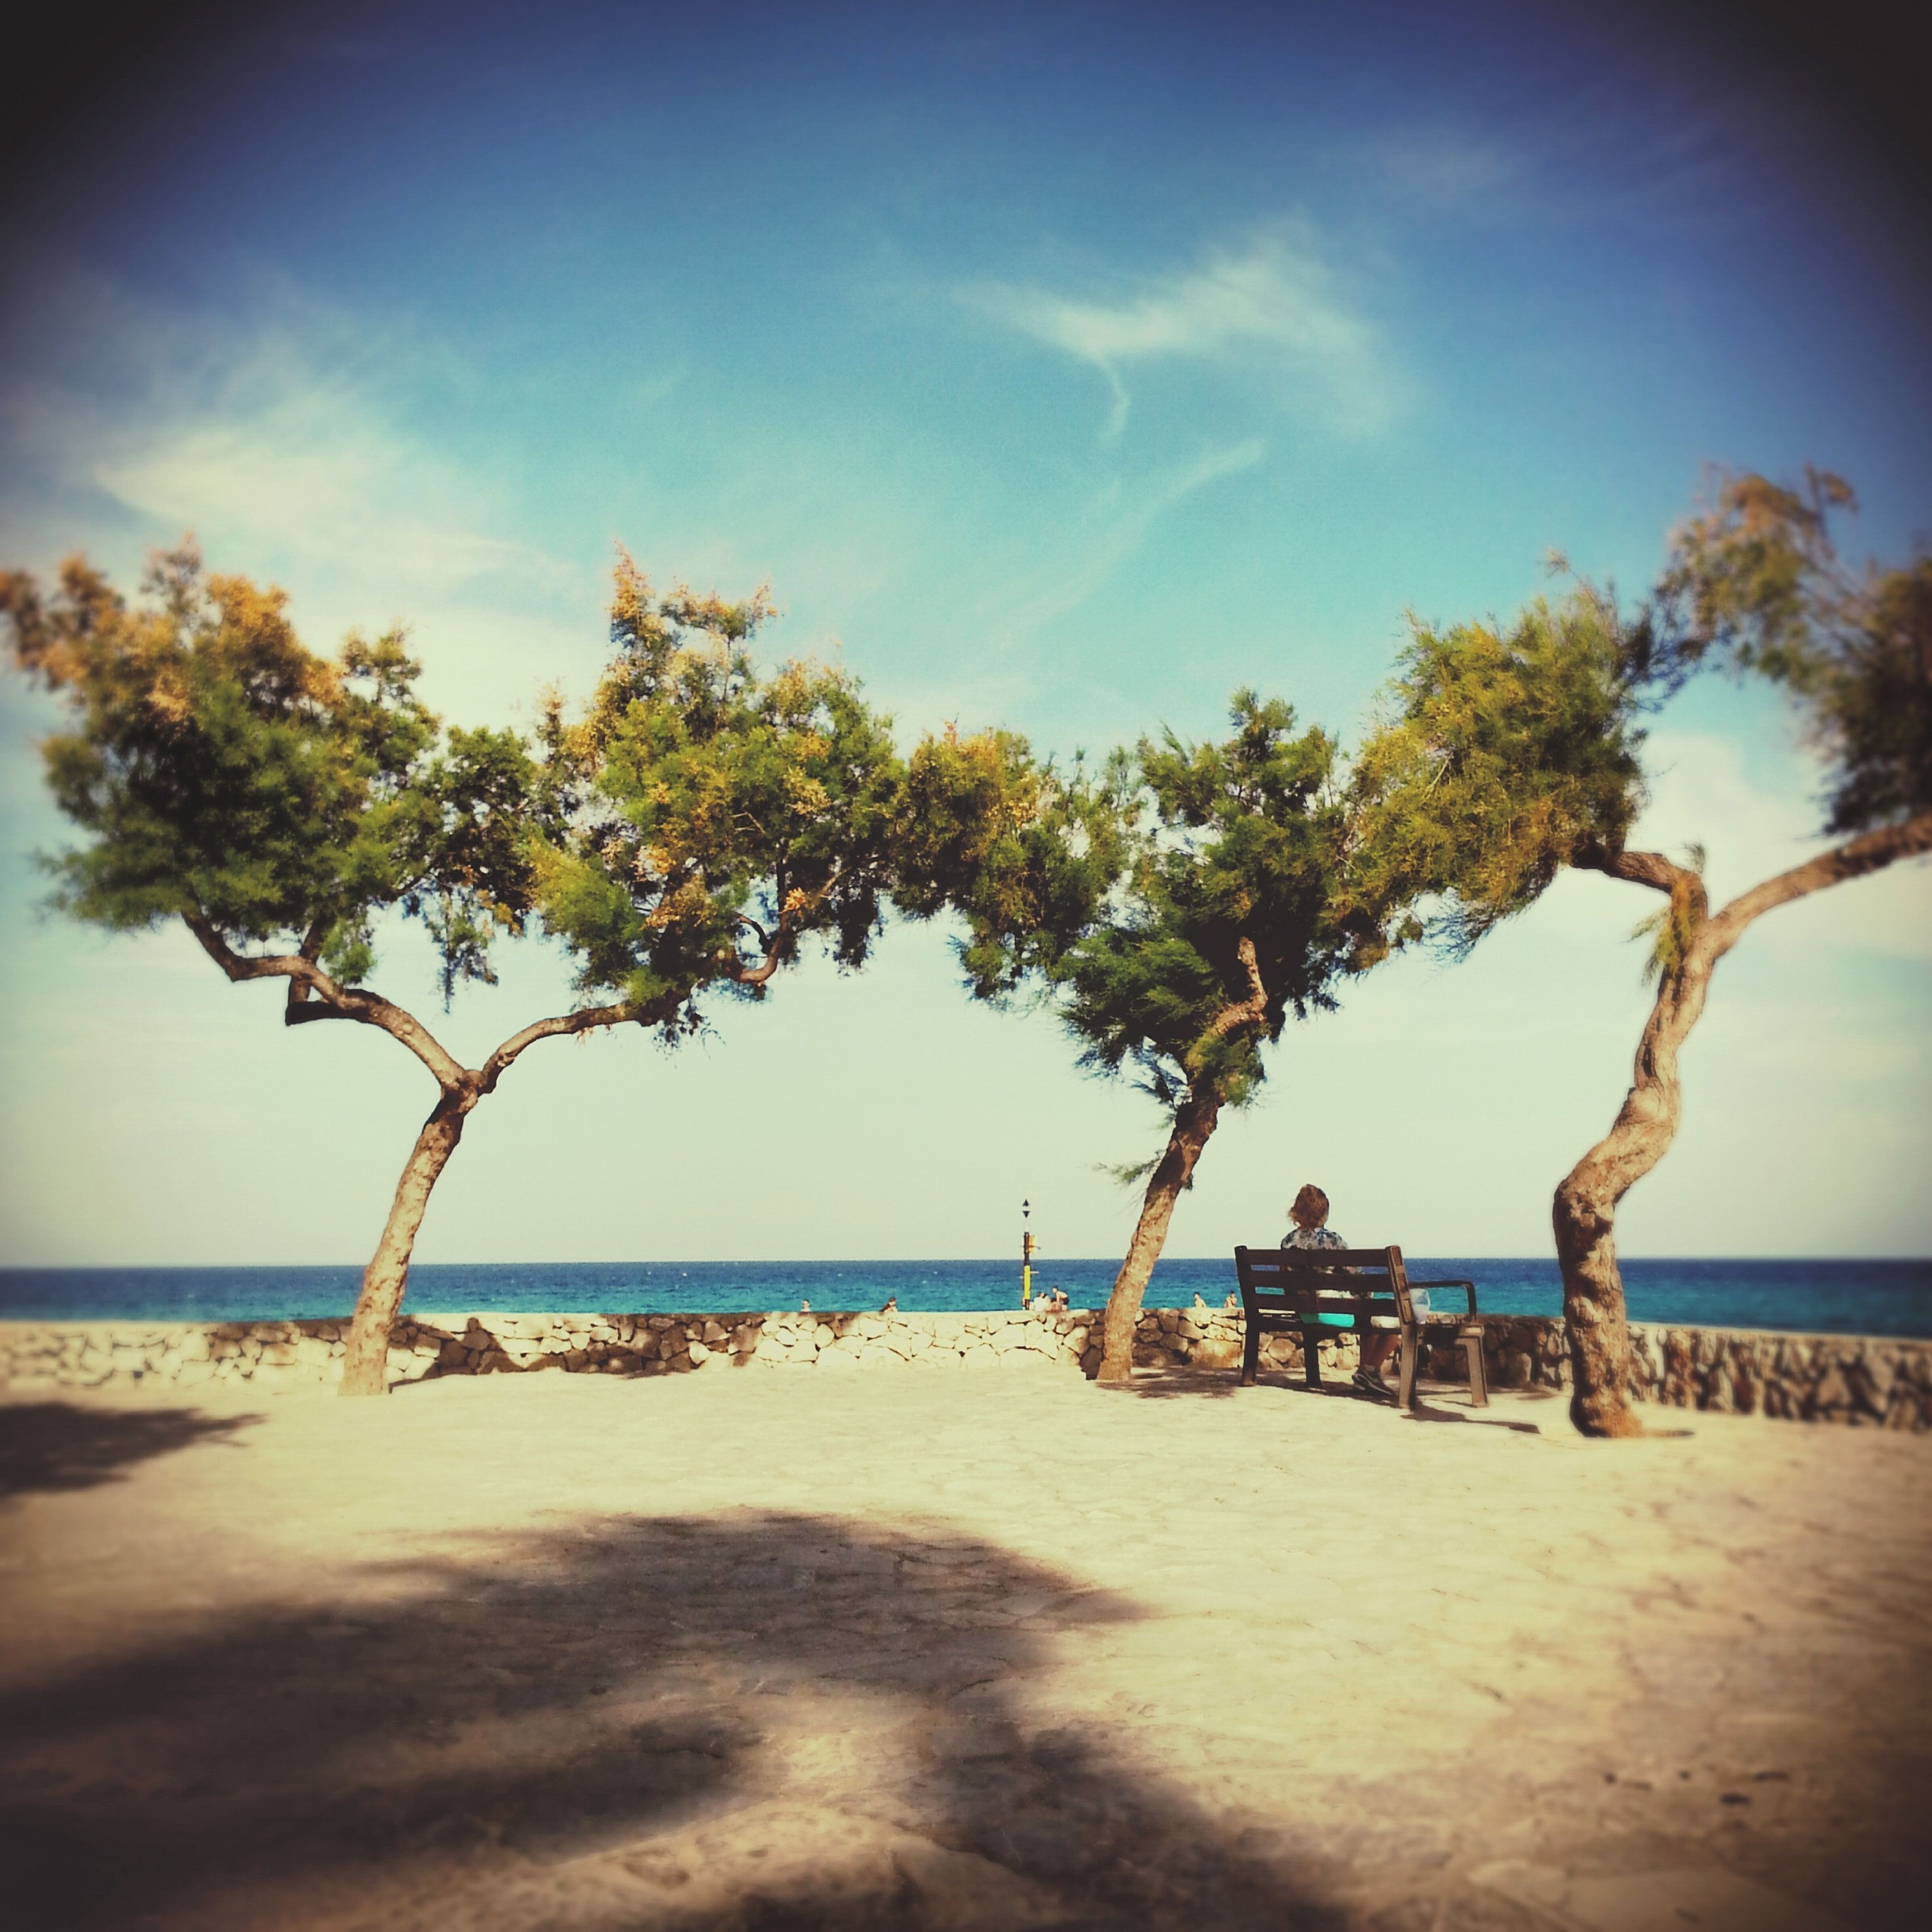 beach, sea, horizon over water, sand, shore, sky, water, tranquility, tree, tranquil scene, scenics, nature, beauty in nature, palm tree, vacations, sunlight, incidental people, shadow, idyllic, tree trunk